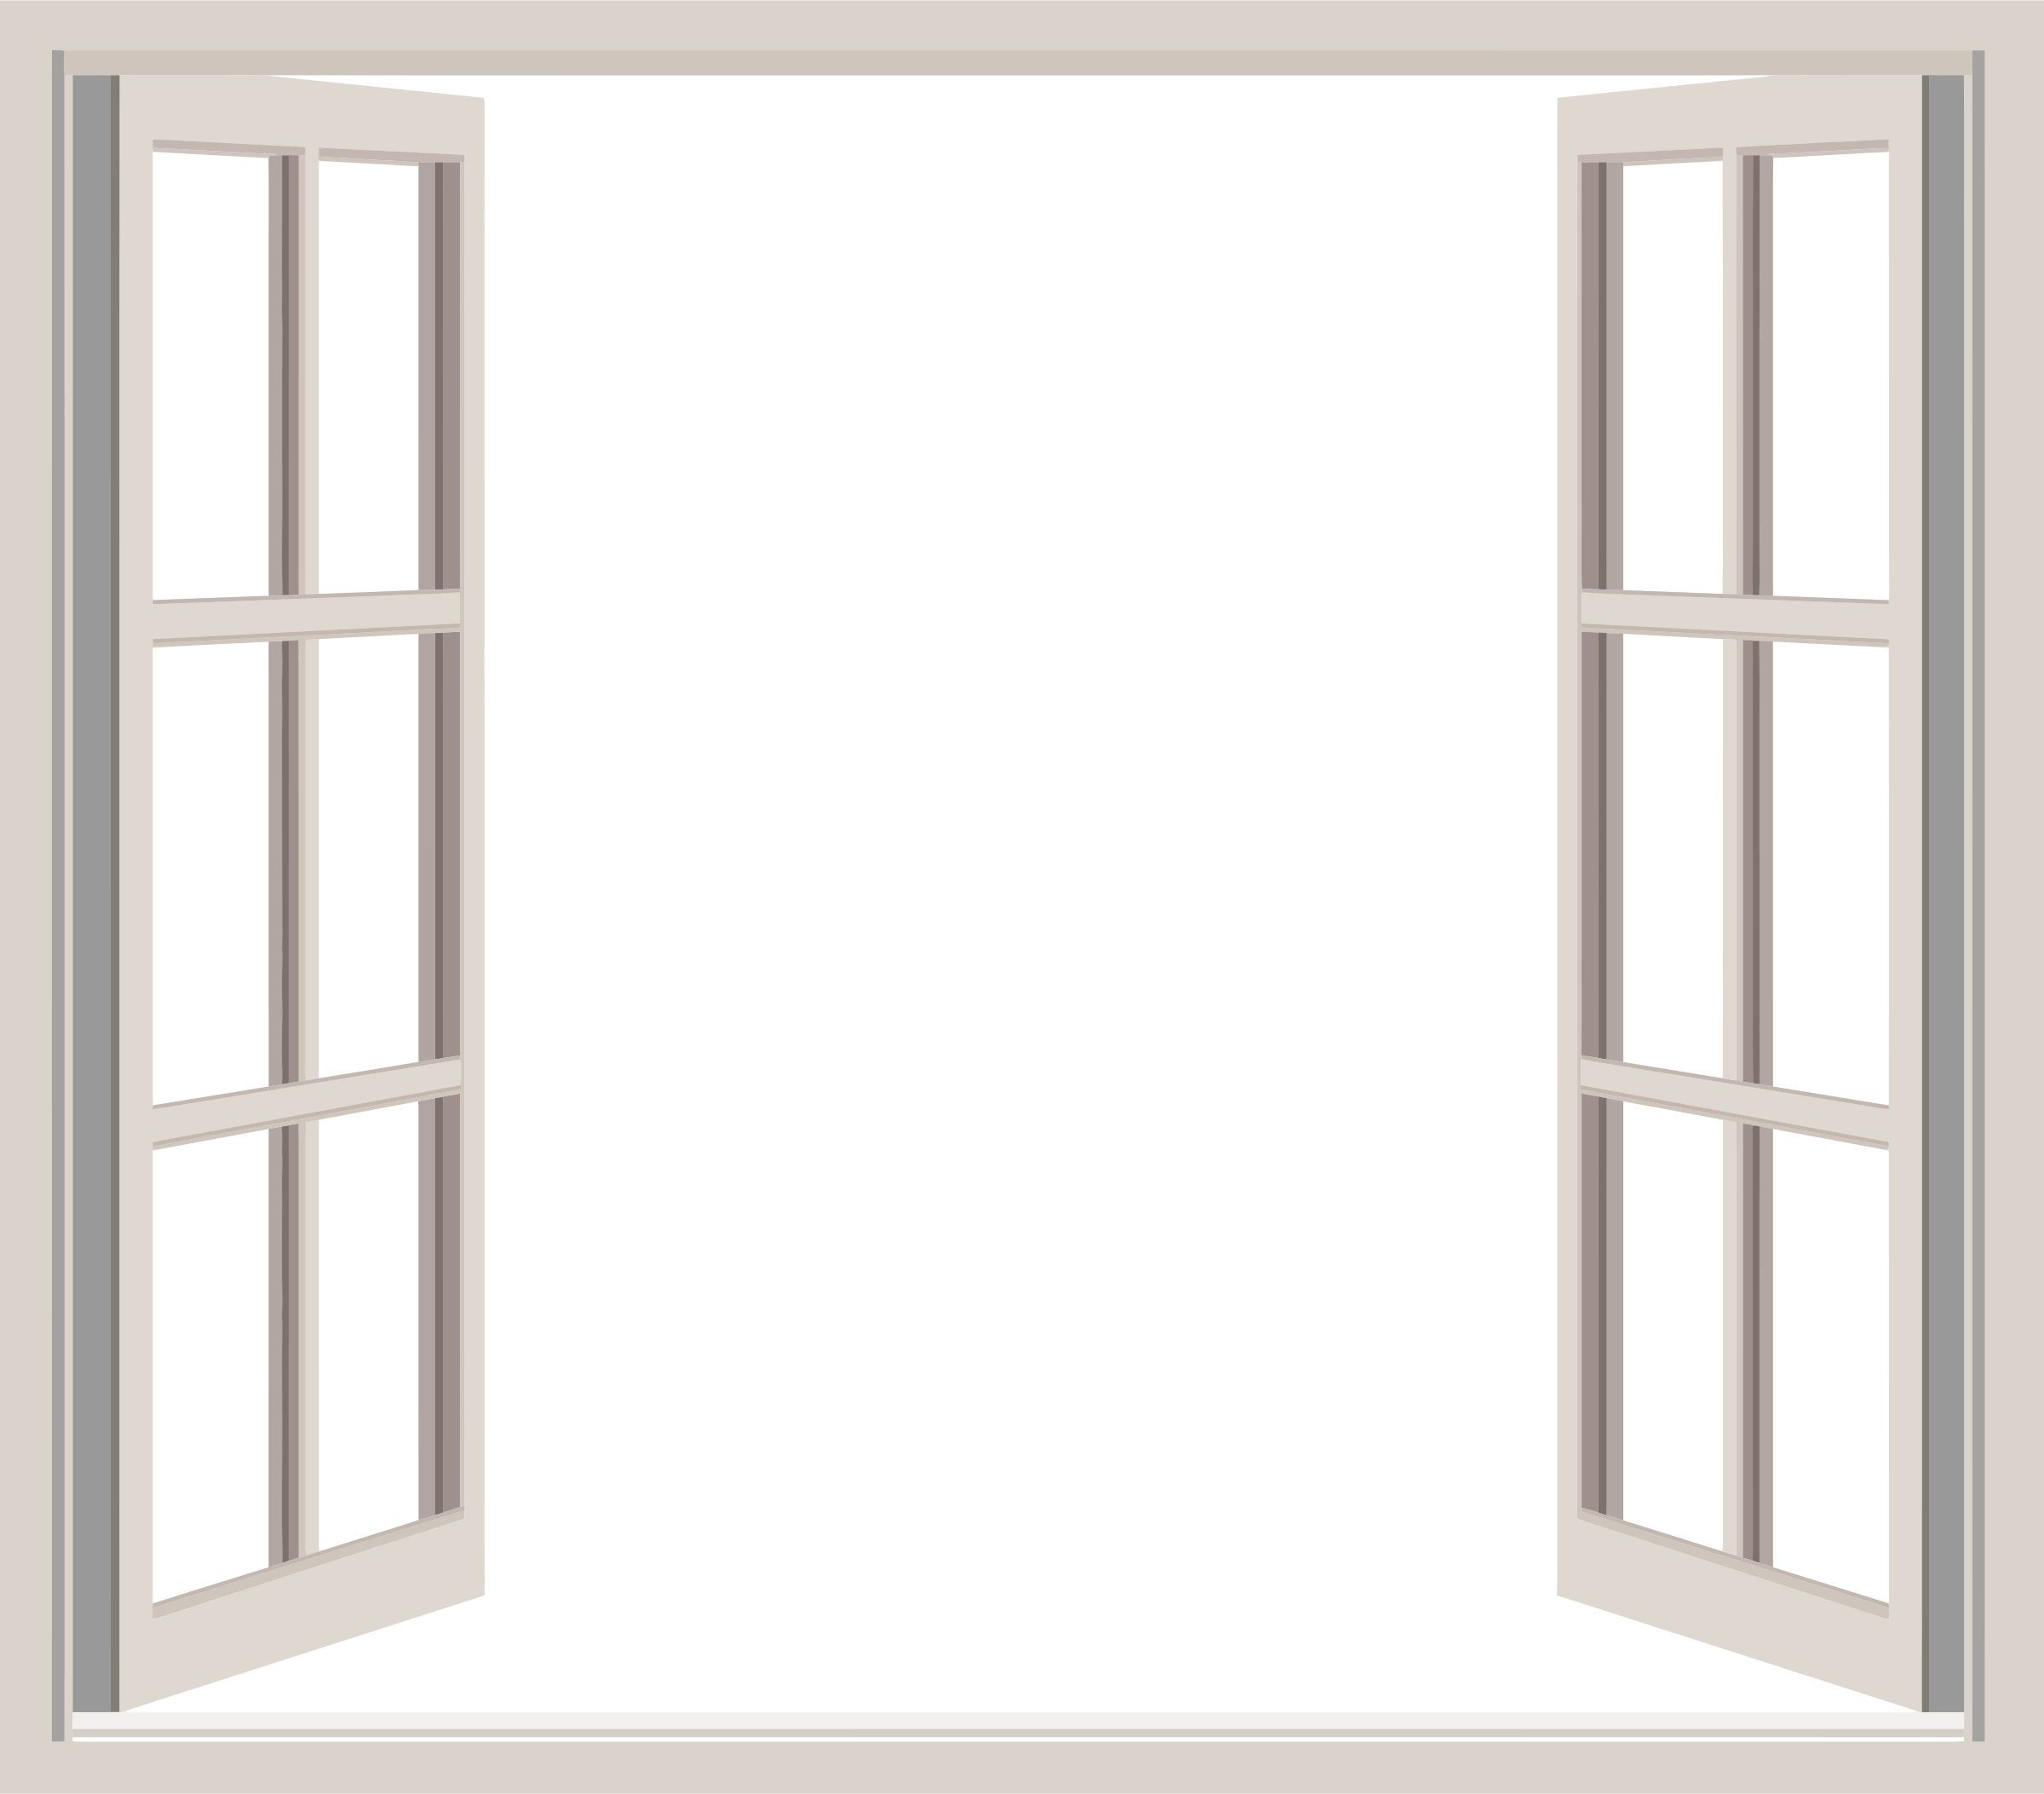 Classic open window transparent png stickpng for Room with no doors or windows